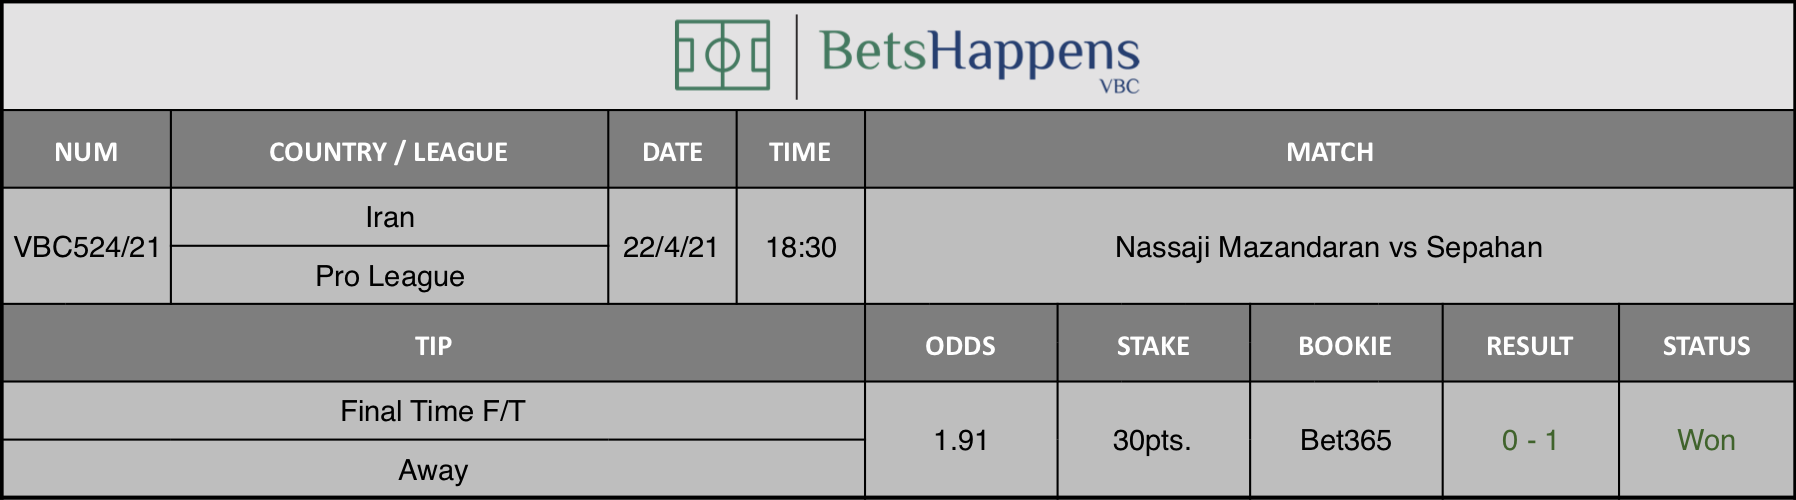 Results of our tip for the Nassaji Mazandaran vs Sepahan match where Final Time F/T Away is recommended.